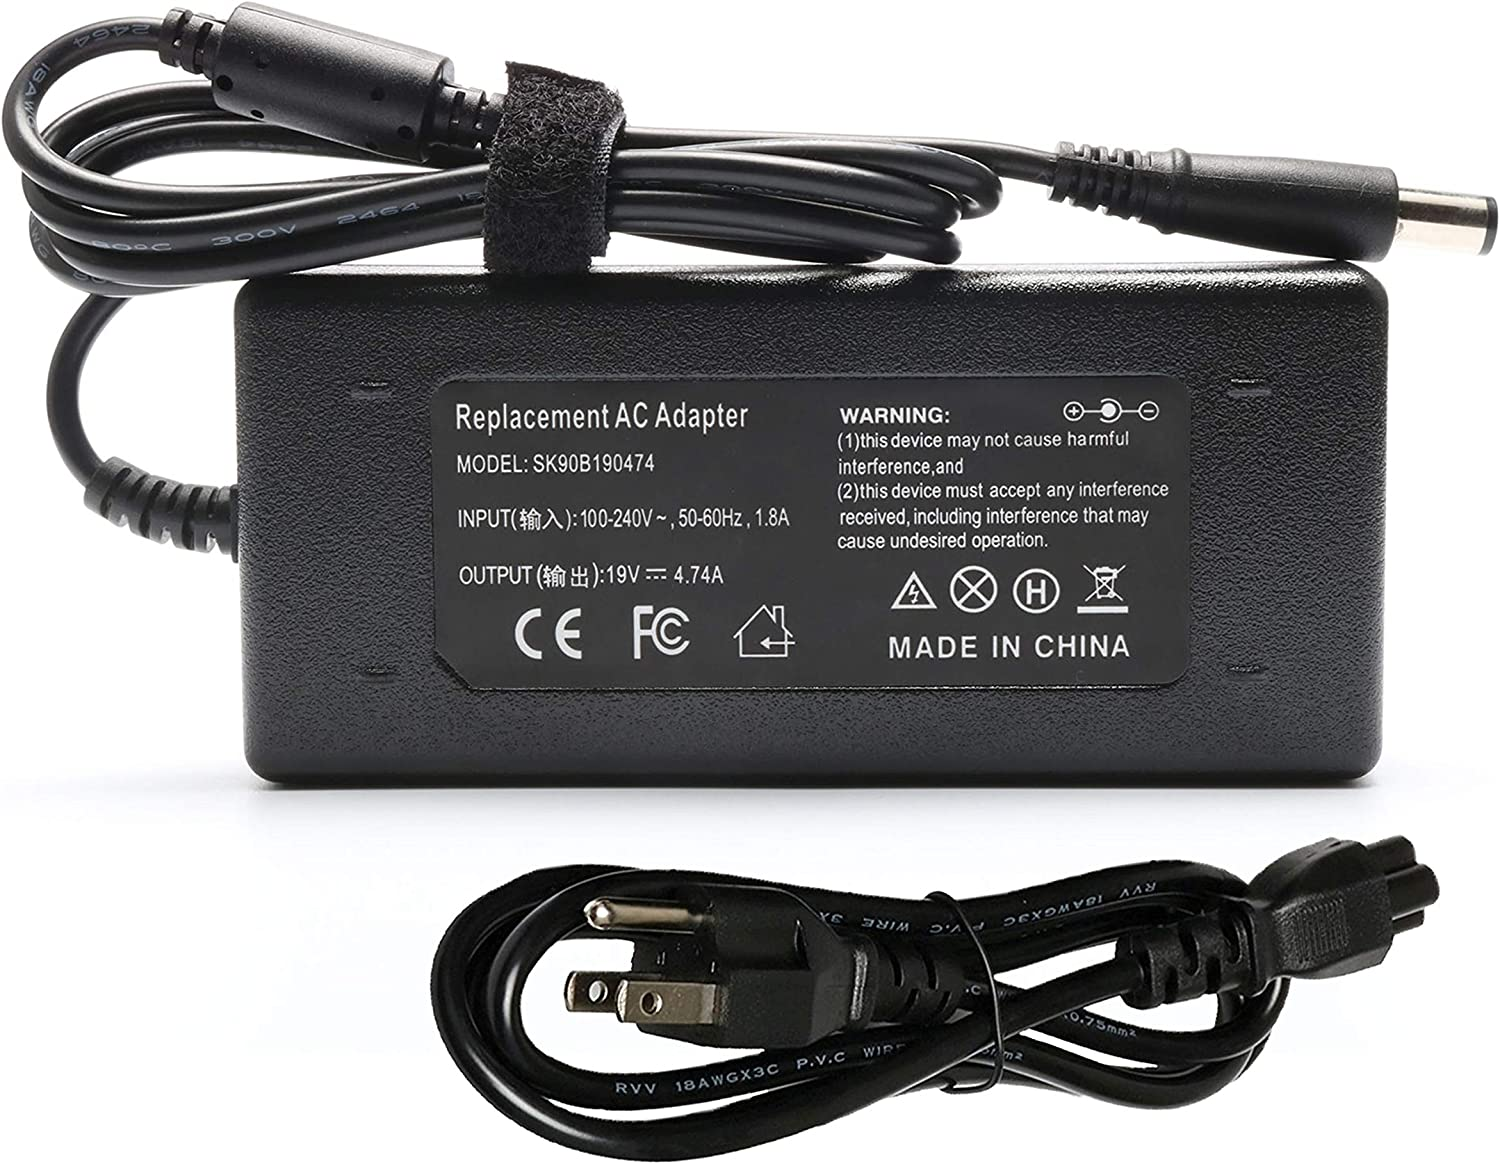 90W 65W 19V 4.74A AC Adapter Charger for HP Elitebook 8460P 8440P 2540P 8470P 2560P 6930P 8560P 8540W 2570P 8540P 8570P 2760P 2170P 8530W 8560W 2530P 2560,Folio 9470,A6-5350M D8H46AV Power Cord